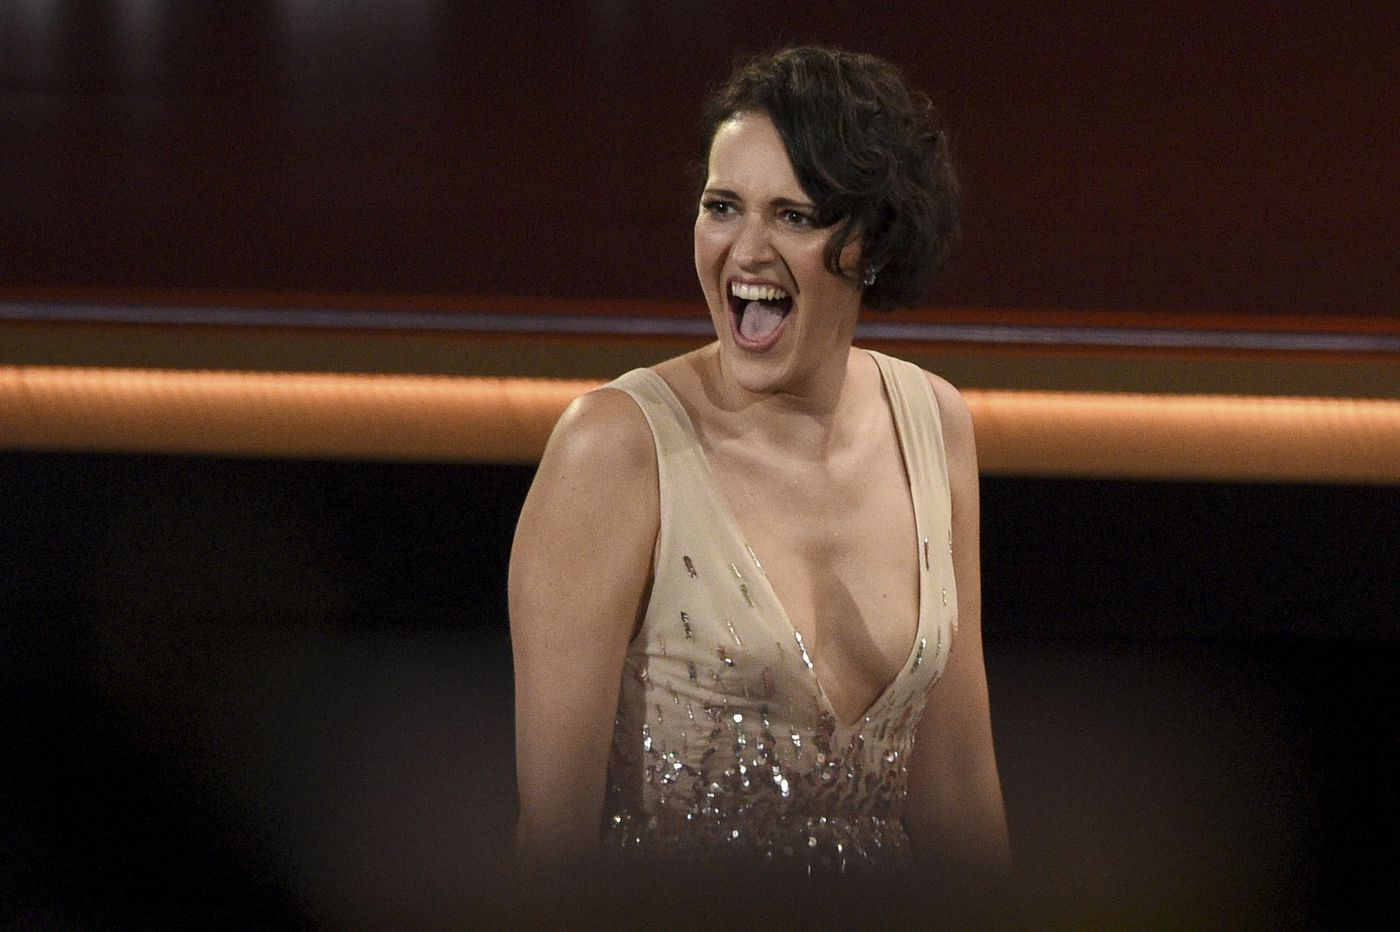 Emmys 2019: 'Game of Thrones,' 'Fleabag' win top awards; Billy Porter makes history